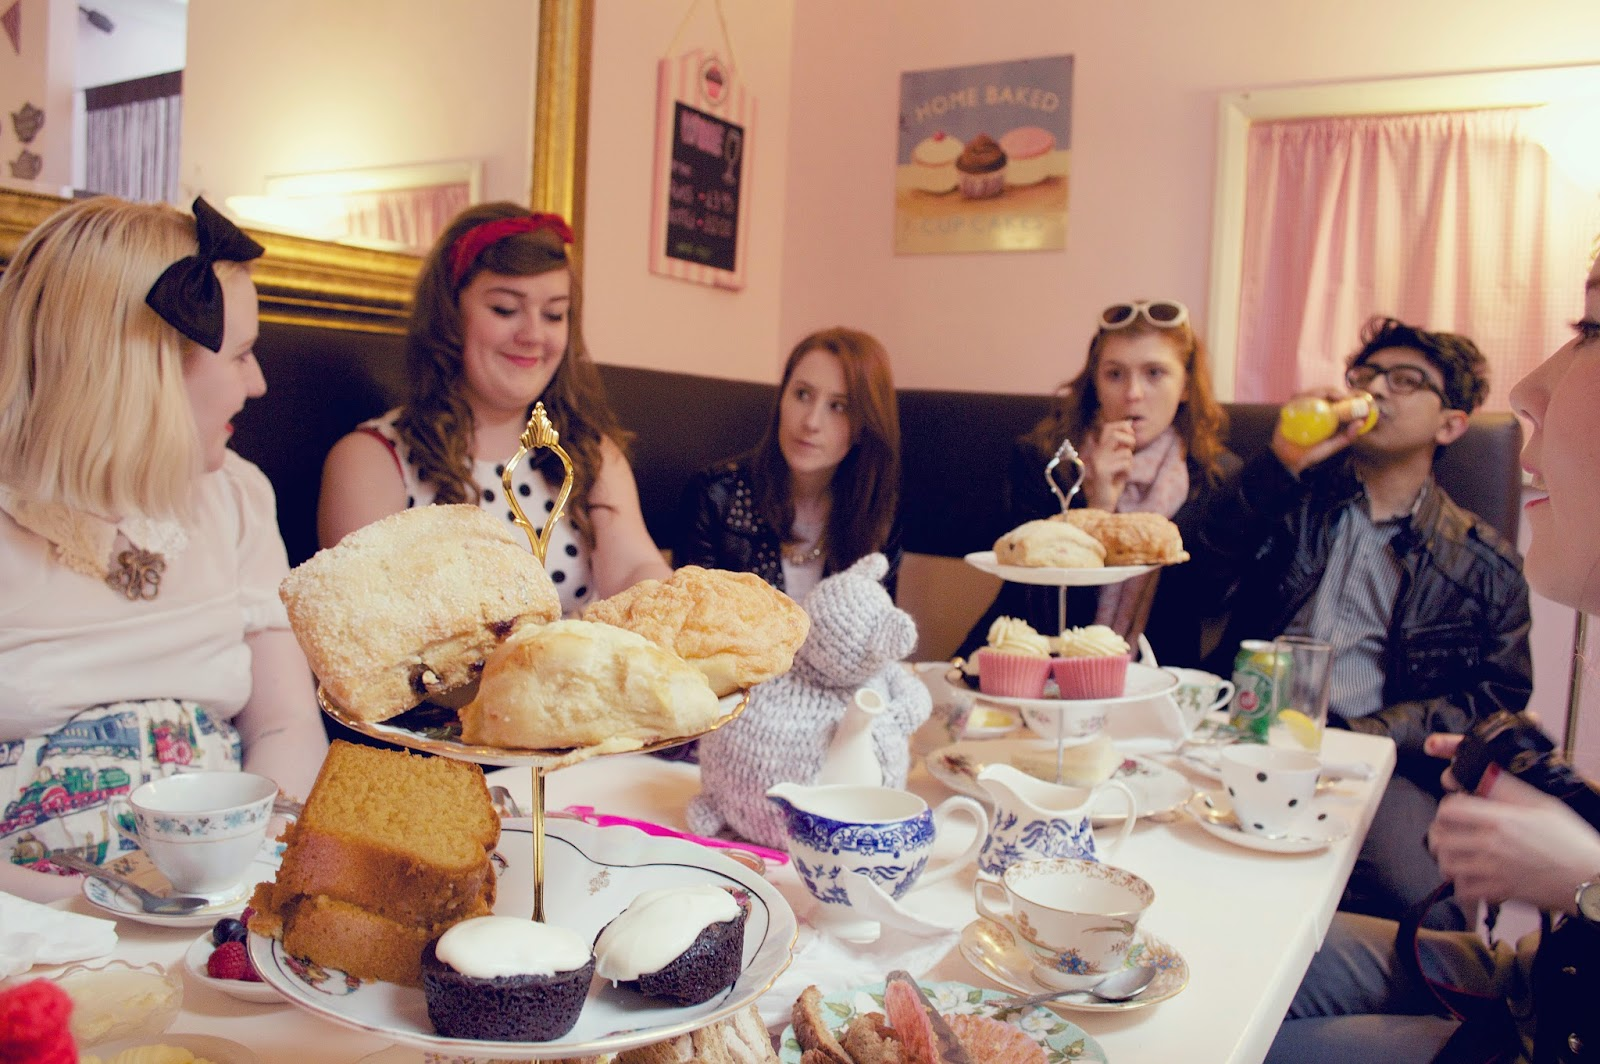 6 Hours Of Tea And Cake. Afternoon Tea, Cupcakes, Earl Grey, Vintage tea room, Tea and cakes